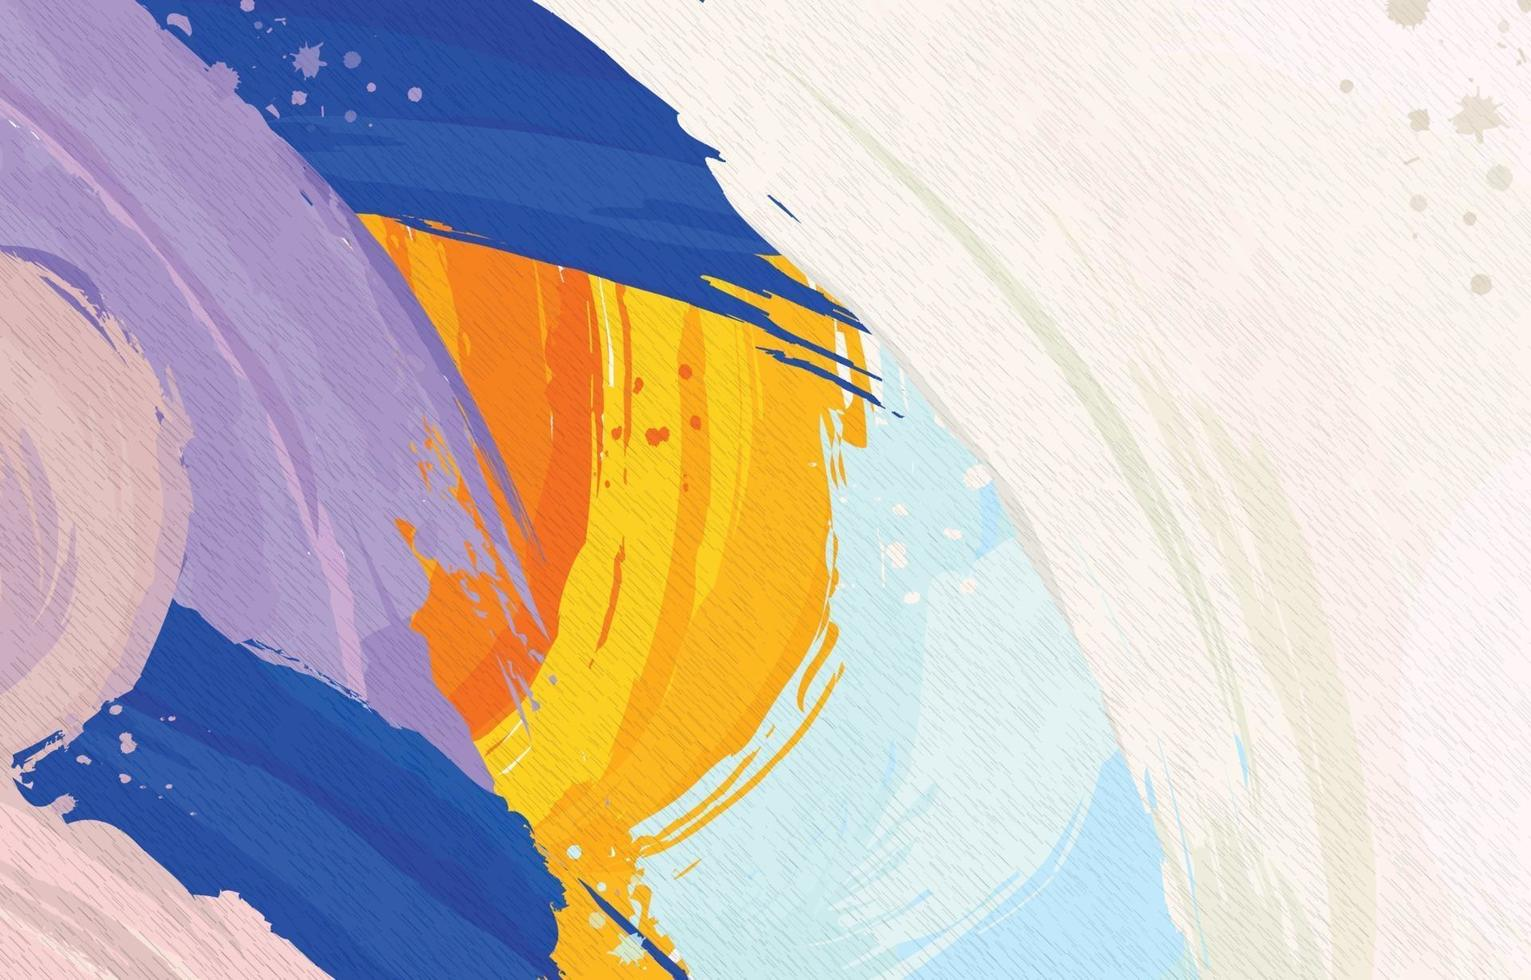 Colourful Textured Painting Background vector